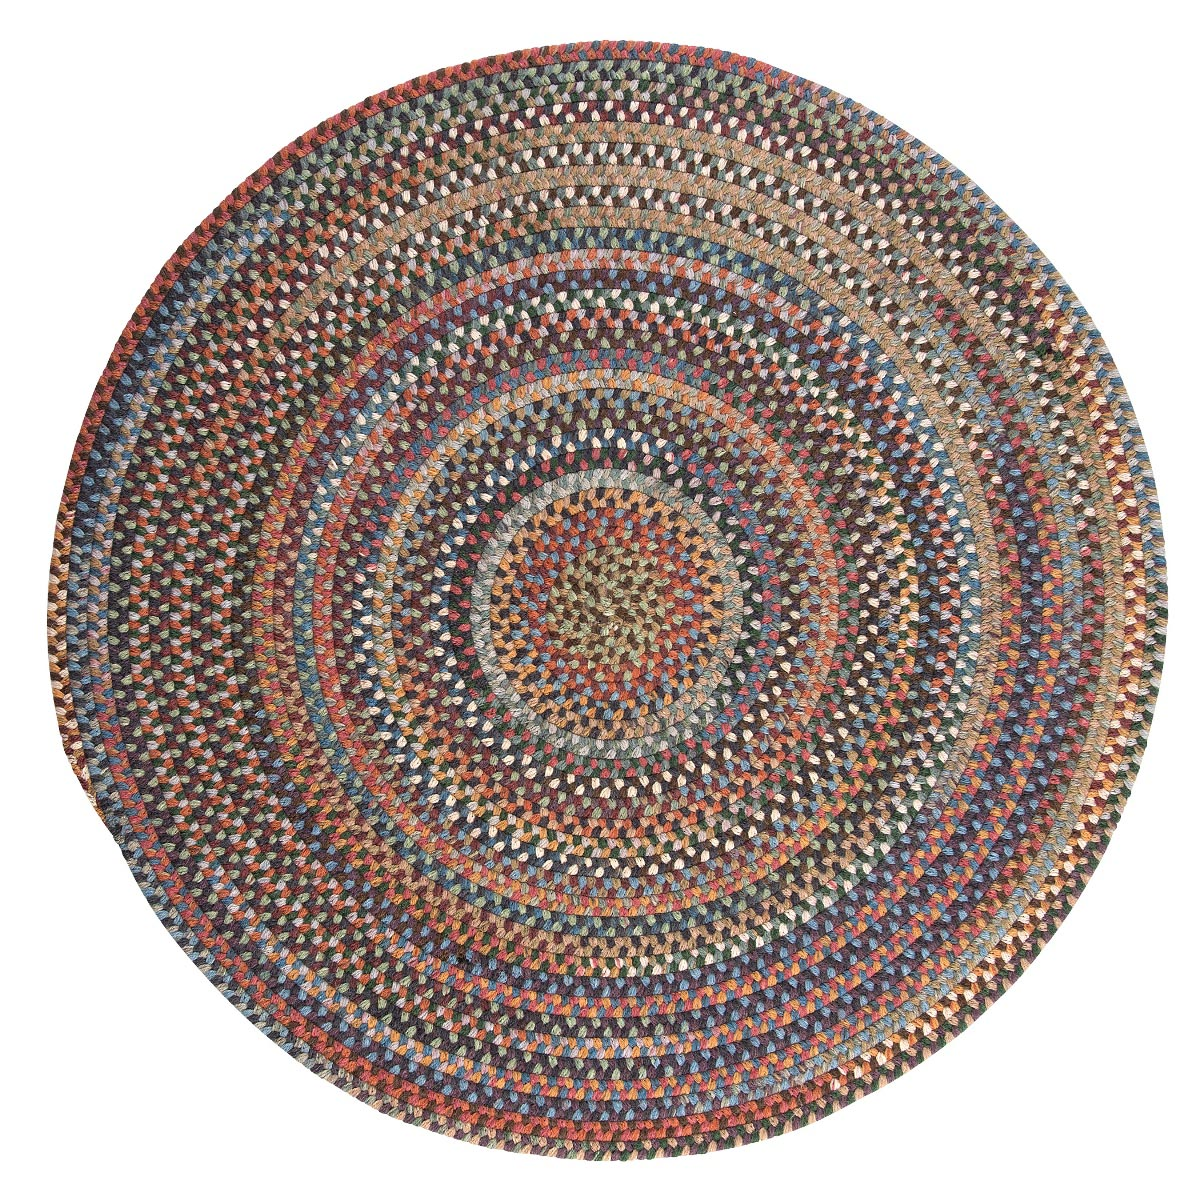 Rustica Classic Multi Wool Braided Round Rugs